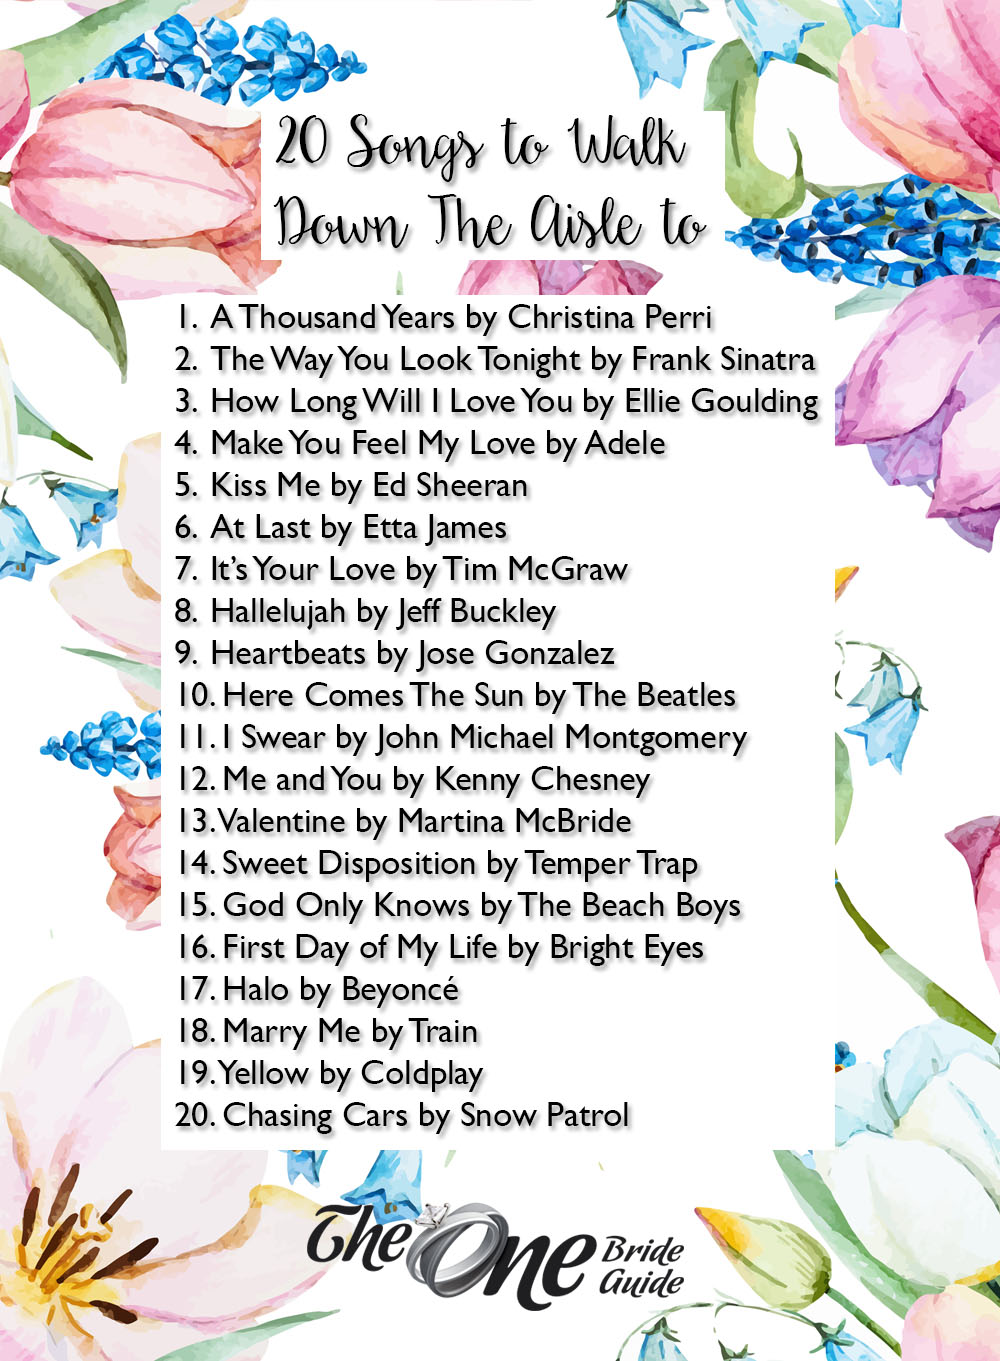 Wedding Party Walking Down The Aisle Songs: 20 Songs To Walk Down The Aisle To